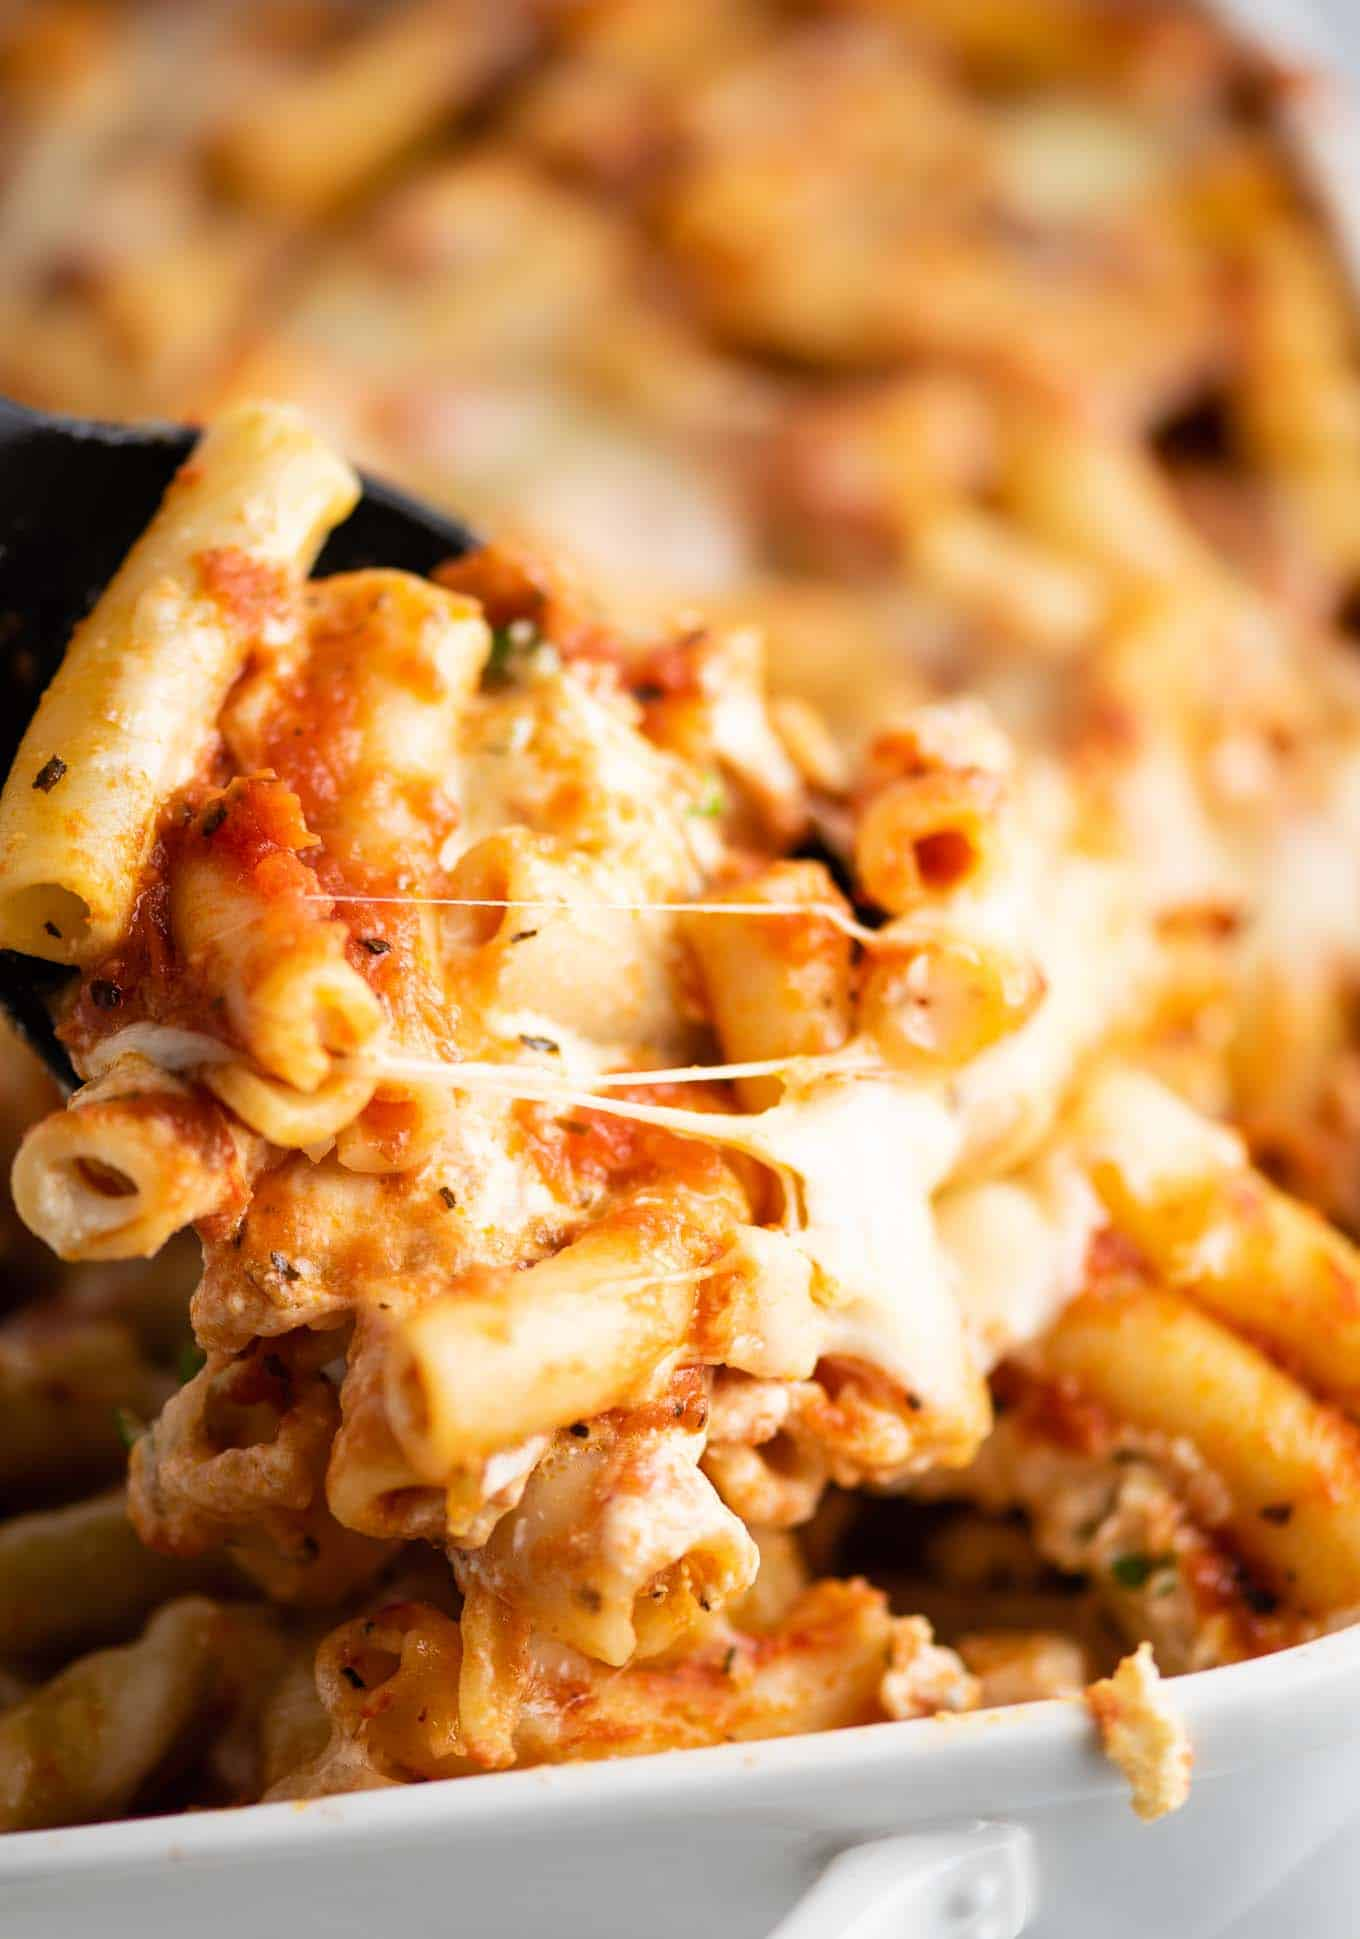 scoop of ziti coming out of the dish